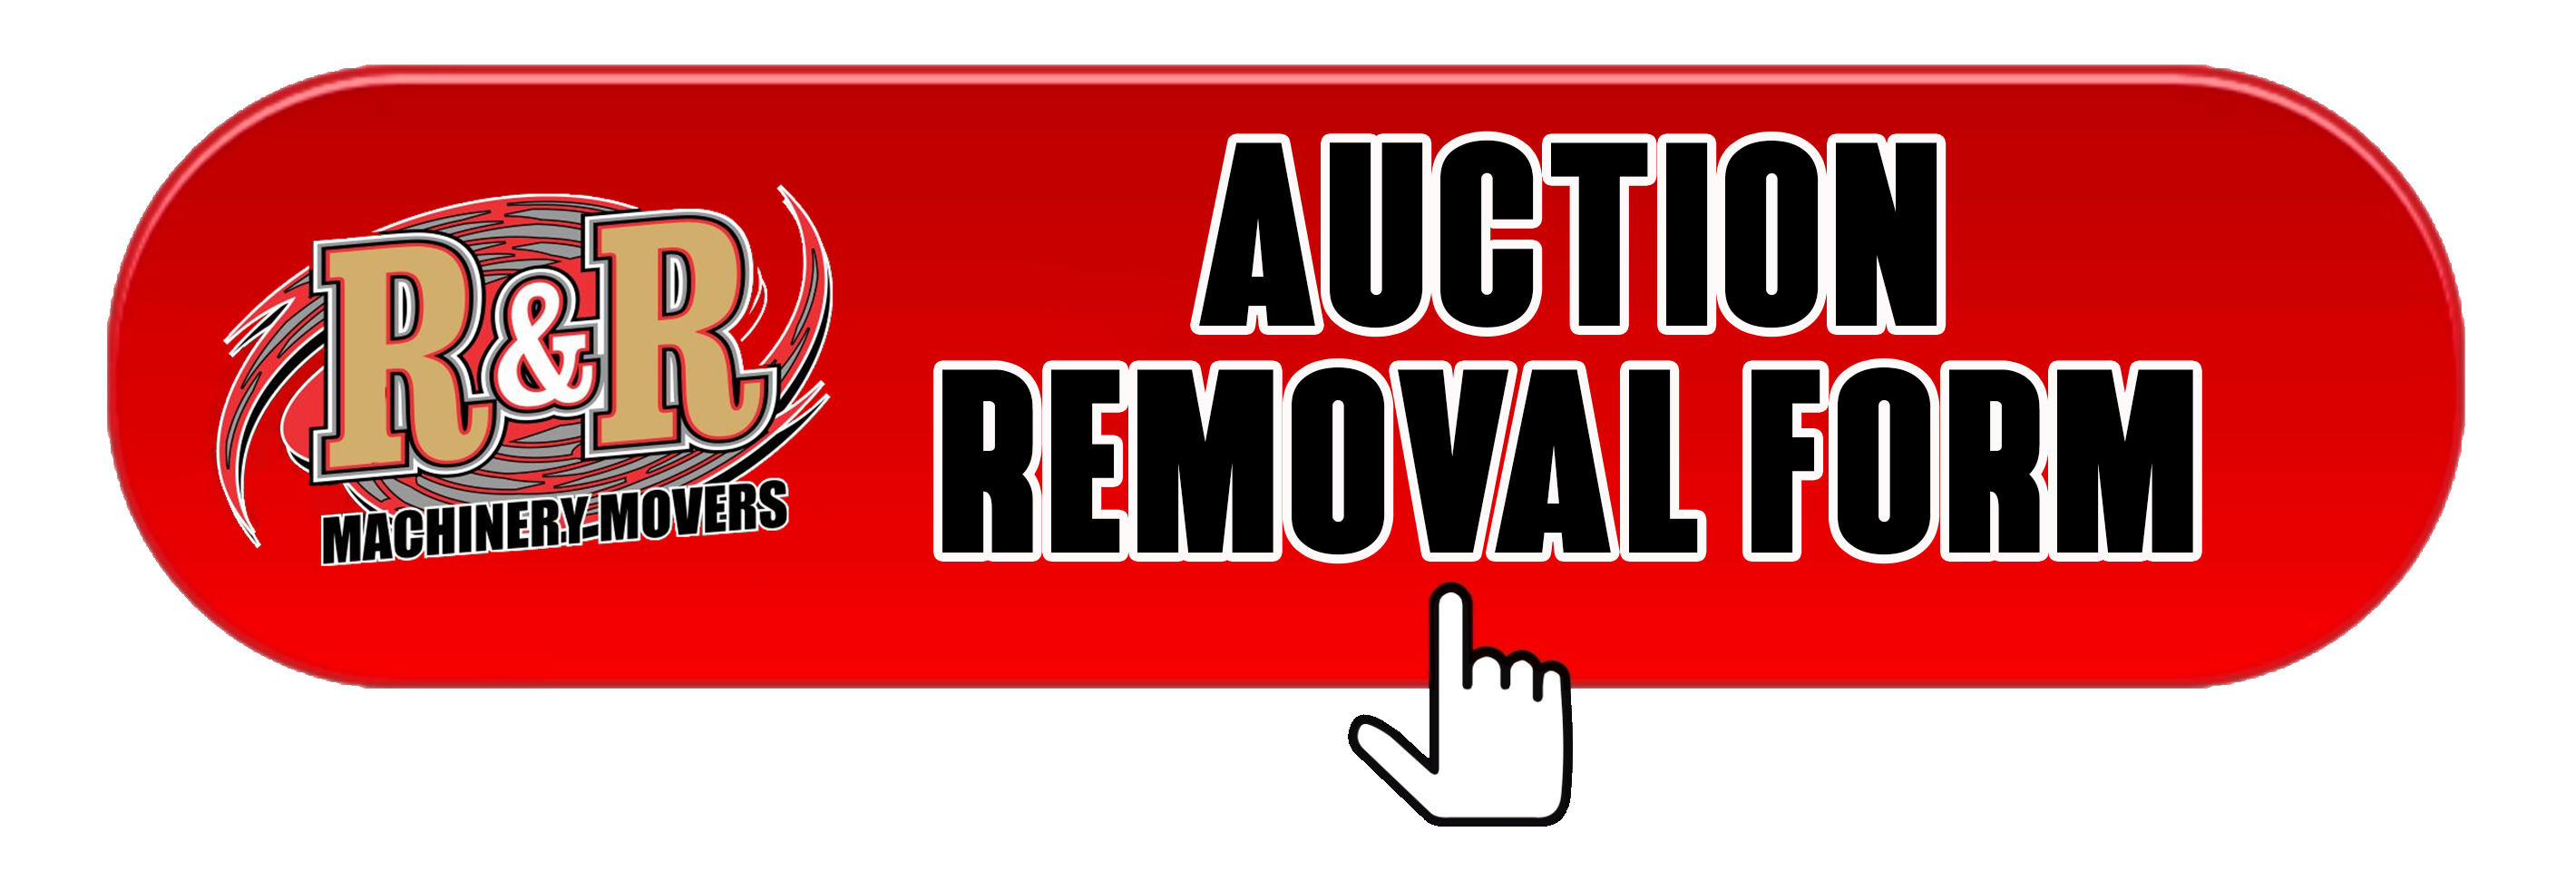 Auction Removal Form